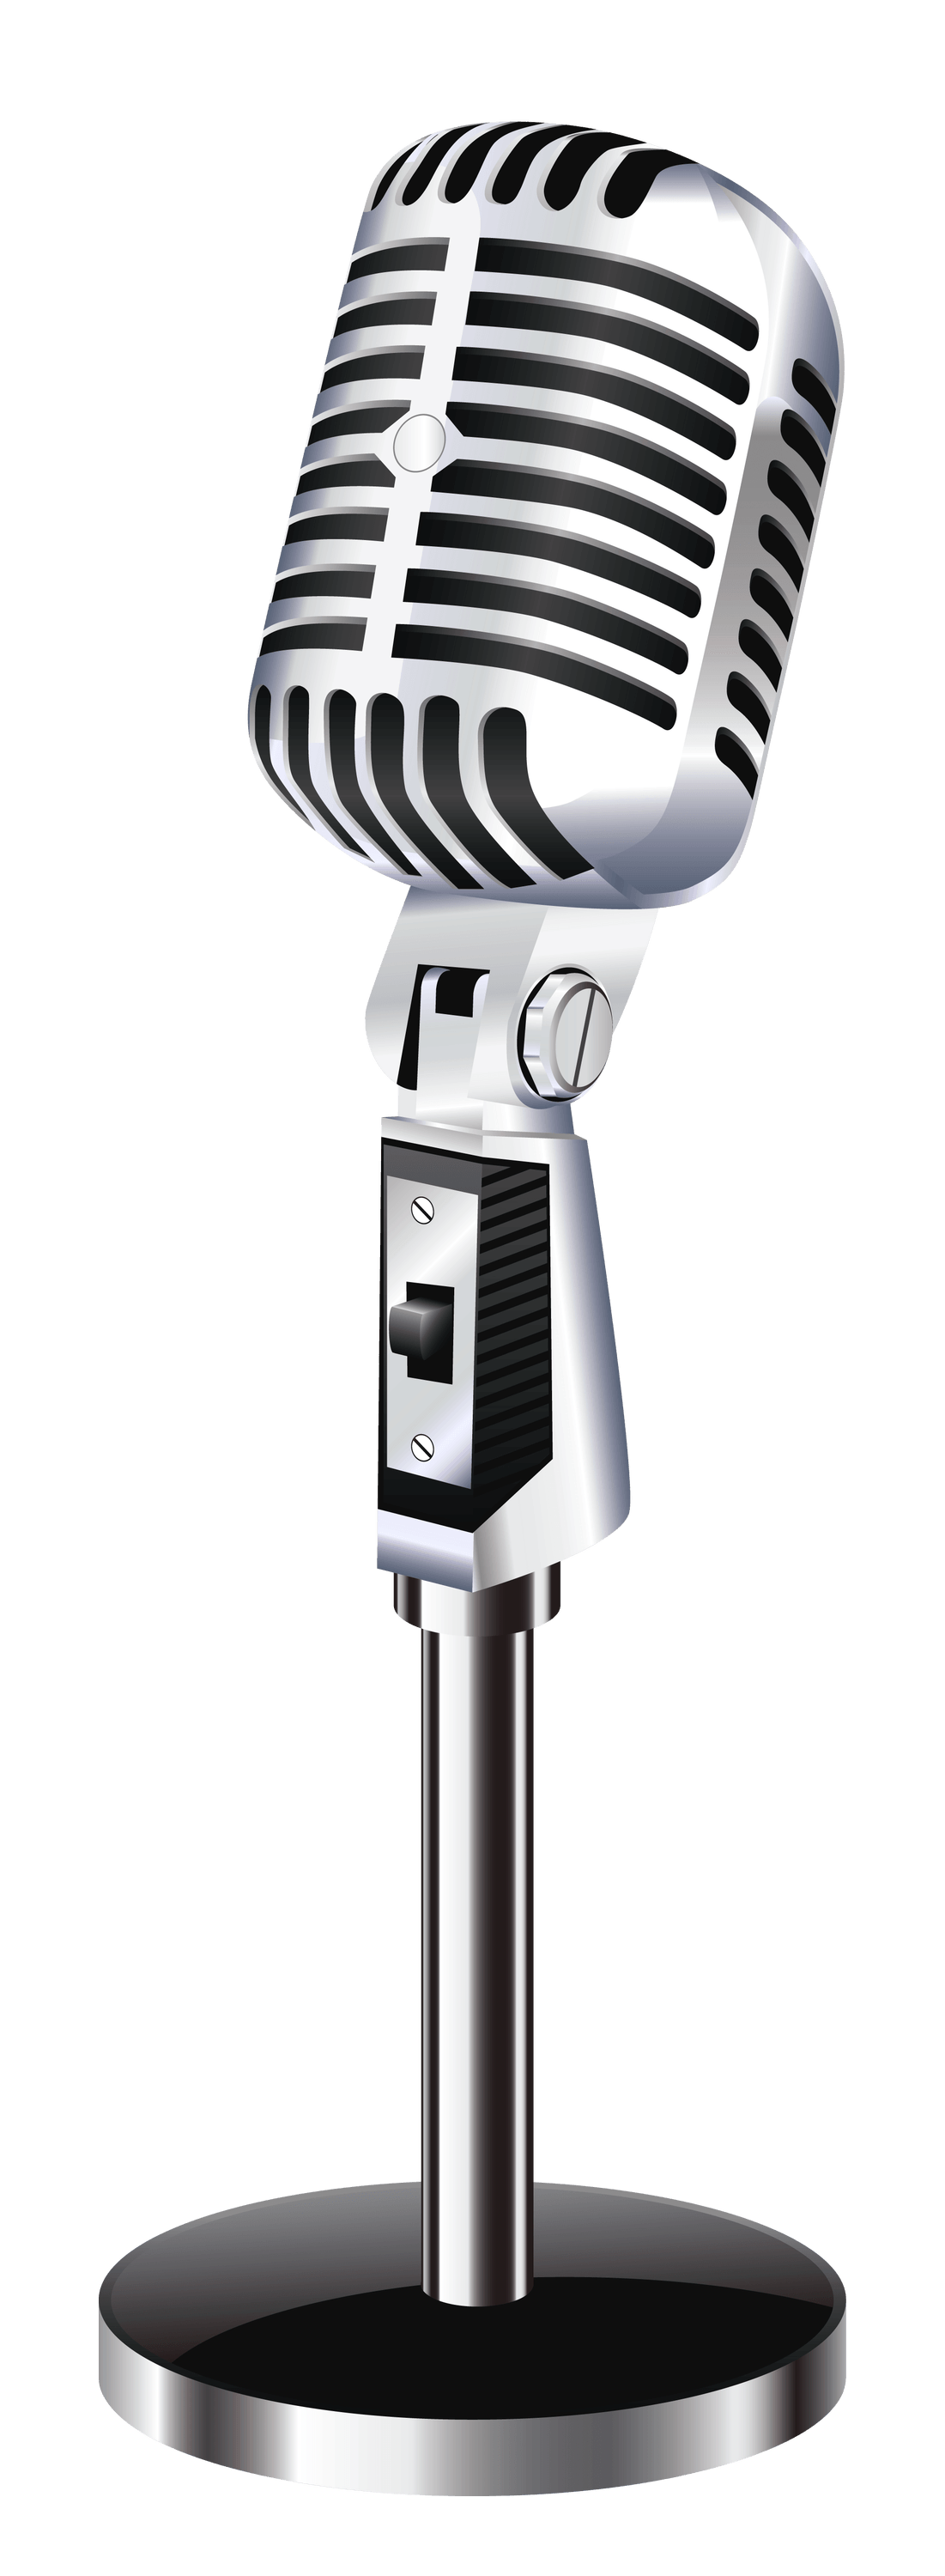 1101x3000 Podcast Clipart Microphone Transparent Png